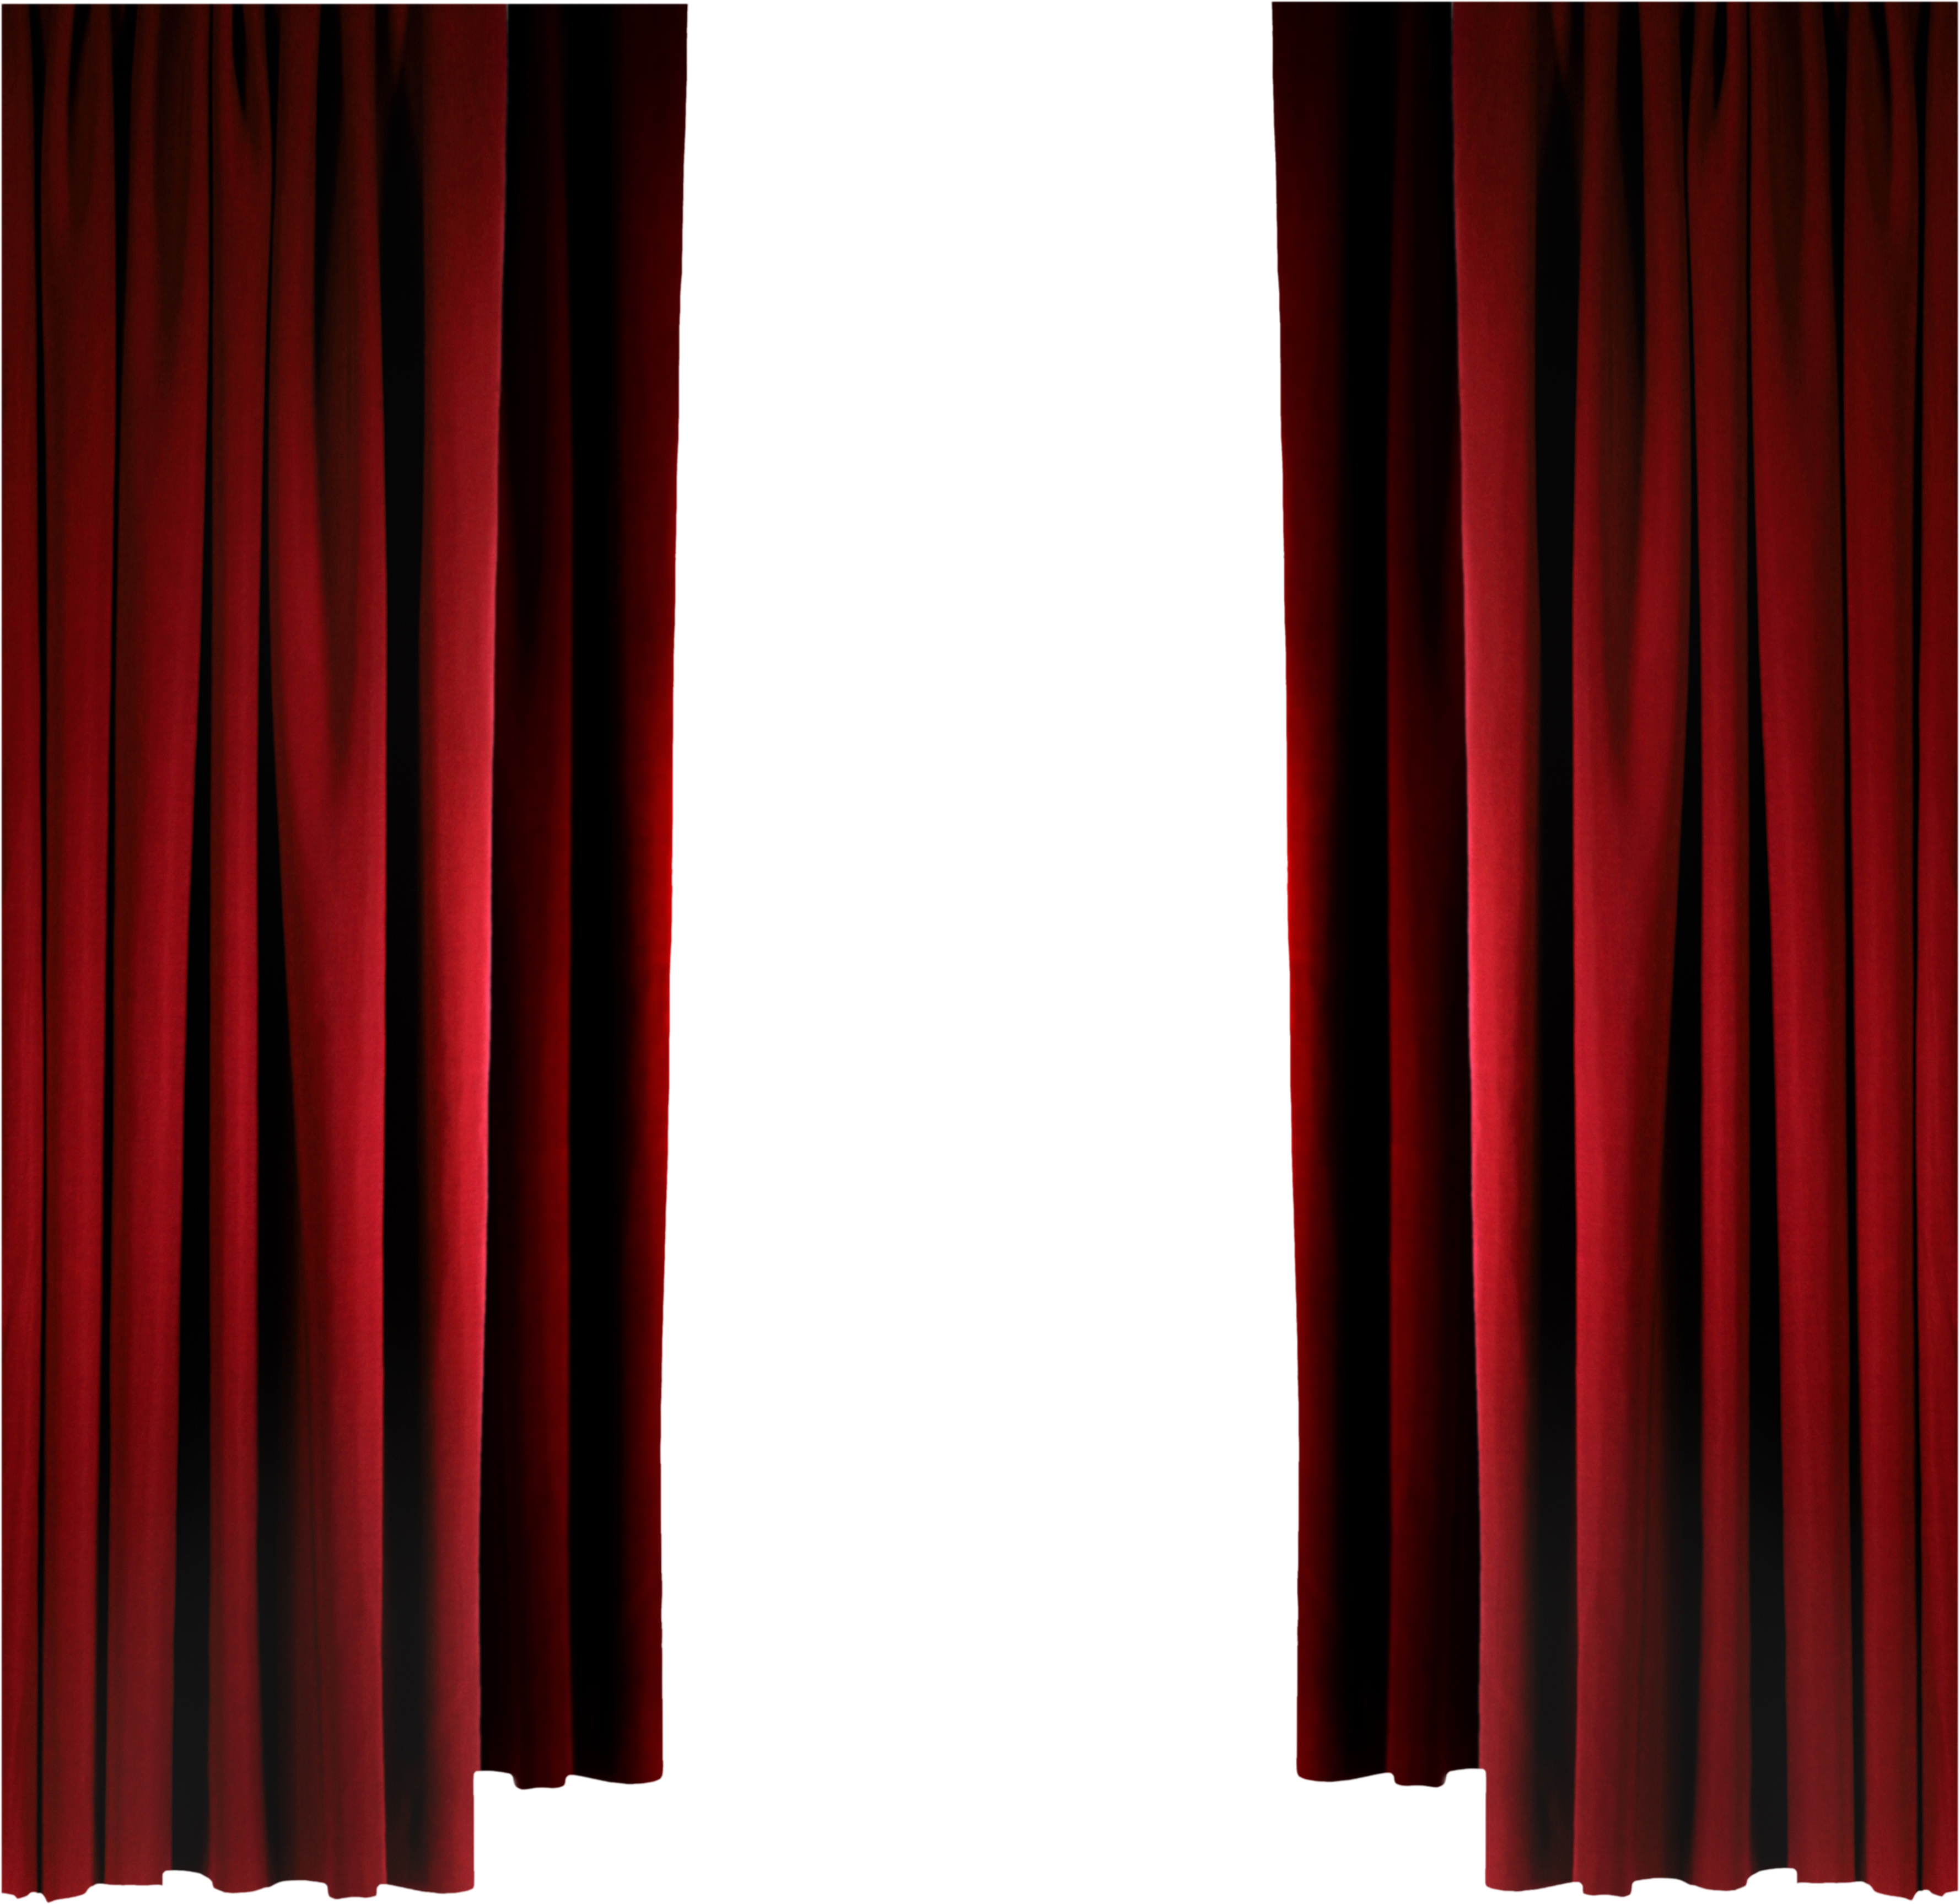 Window with curtains png. Treatment curtain cortinas rojas